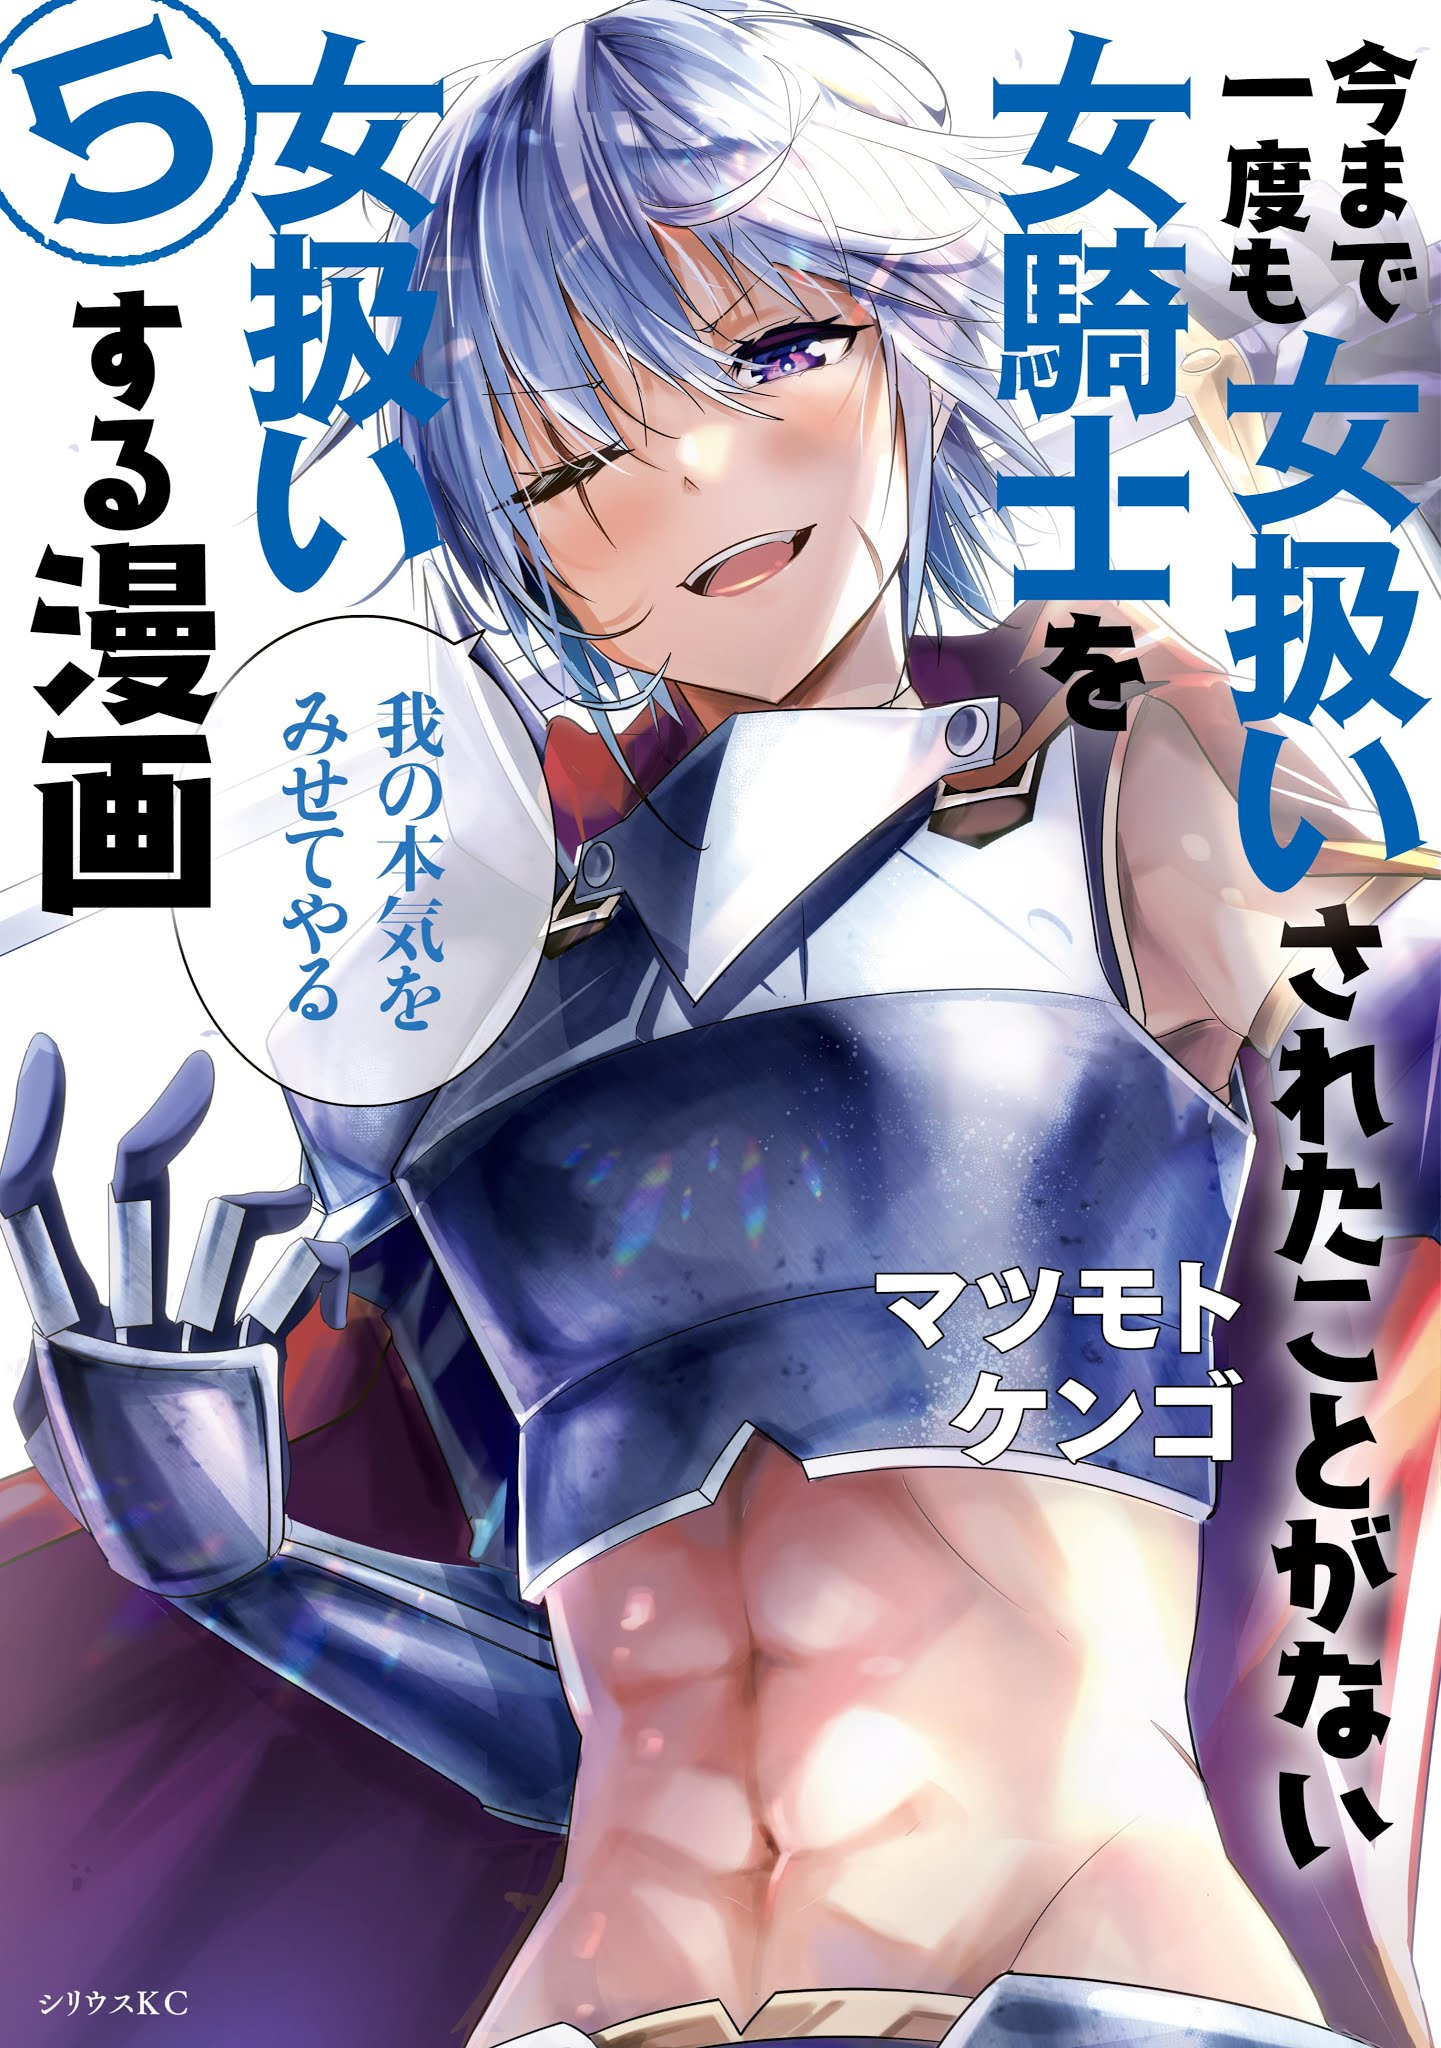 A Story About Treating a Female Knight, Who Has Never Been Treated as a Woman, as a Woman